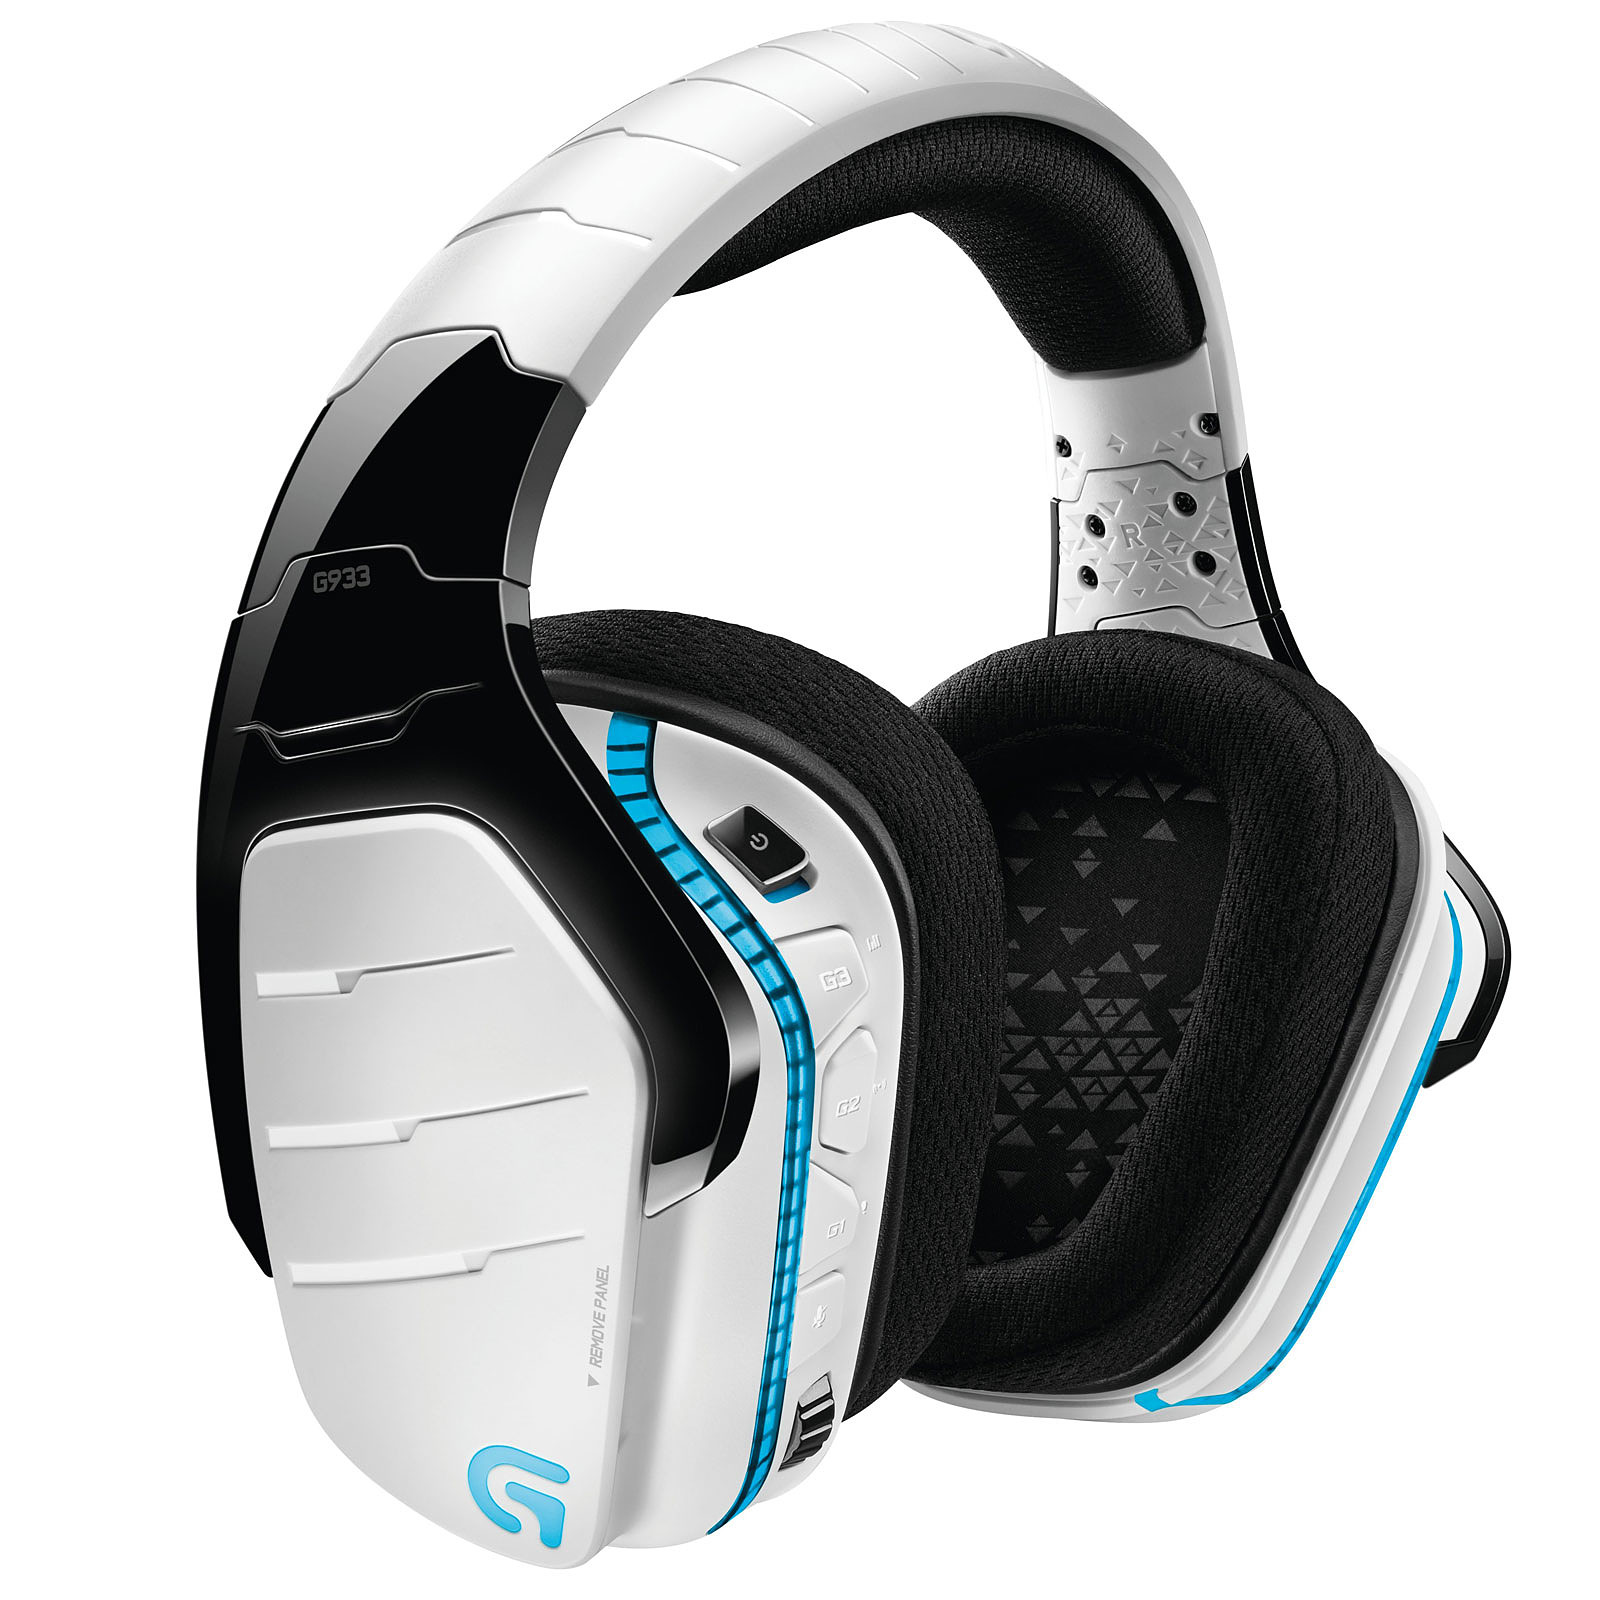 logitech g933 artemis spectrum sans fil casque gaming surround 7.1